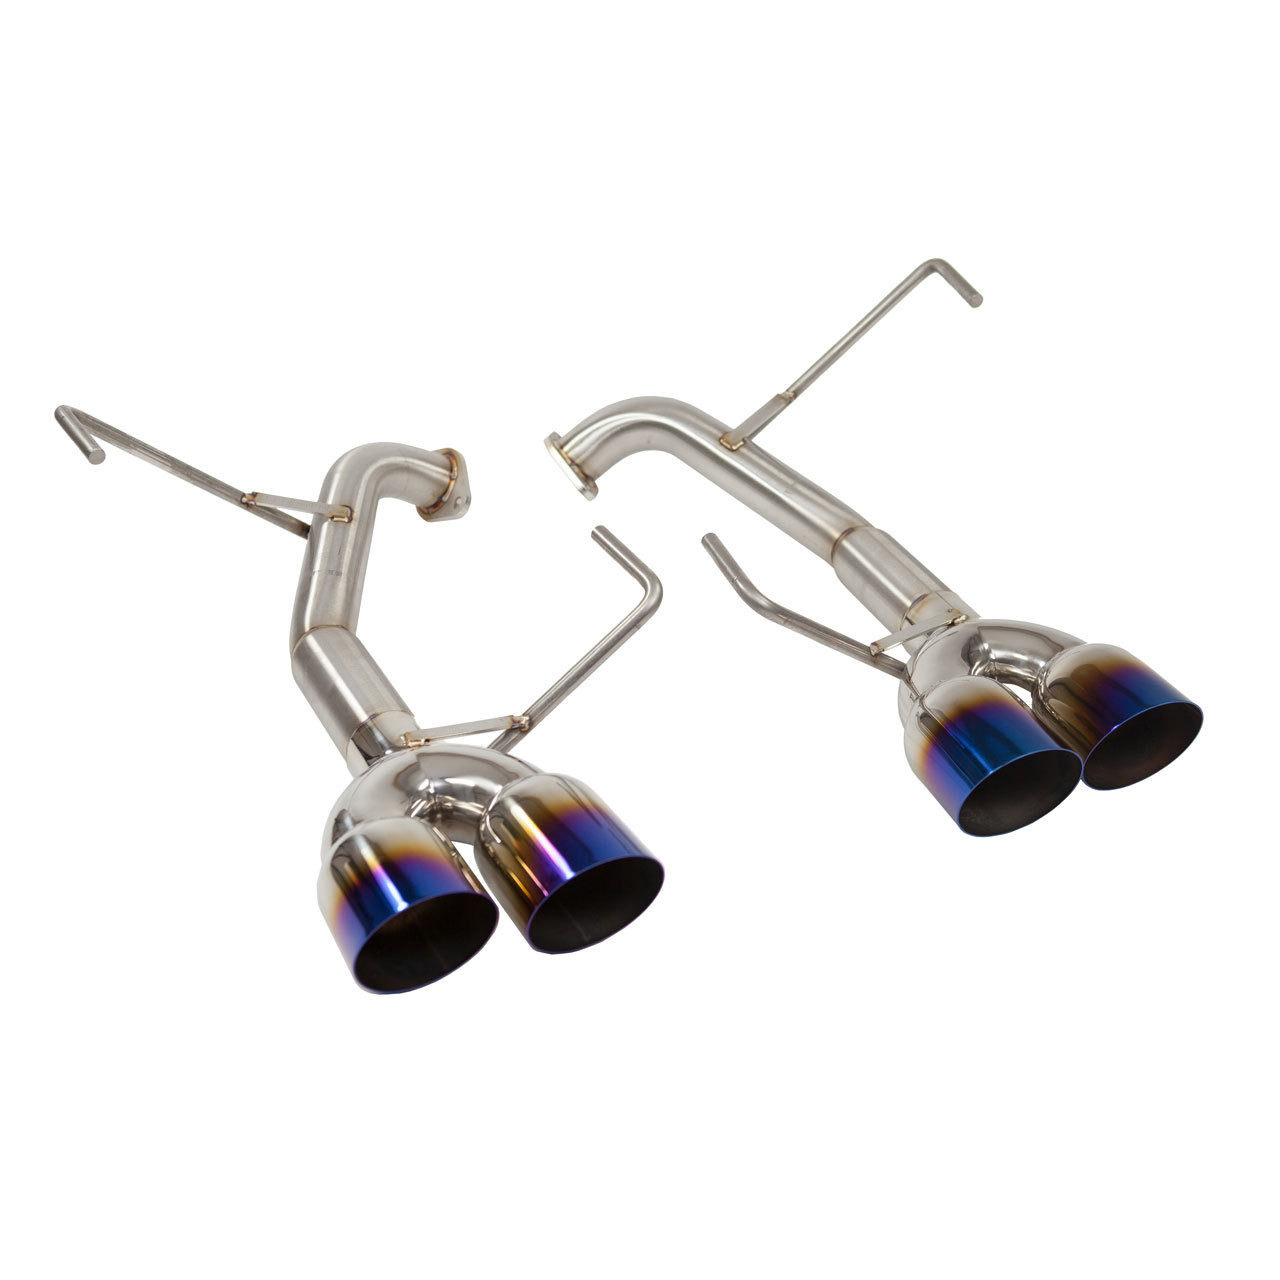 hight resolution of muffler delete axle back exhaust 3 5 quad single wall neo chrome